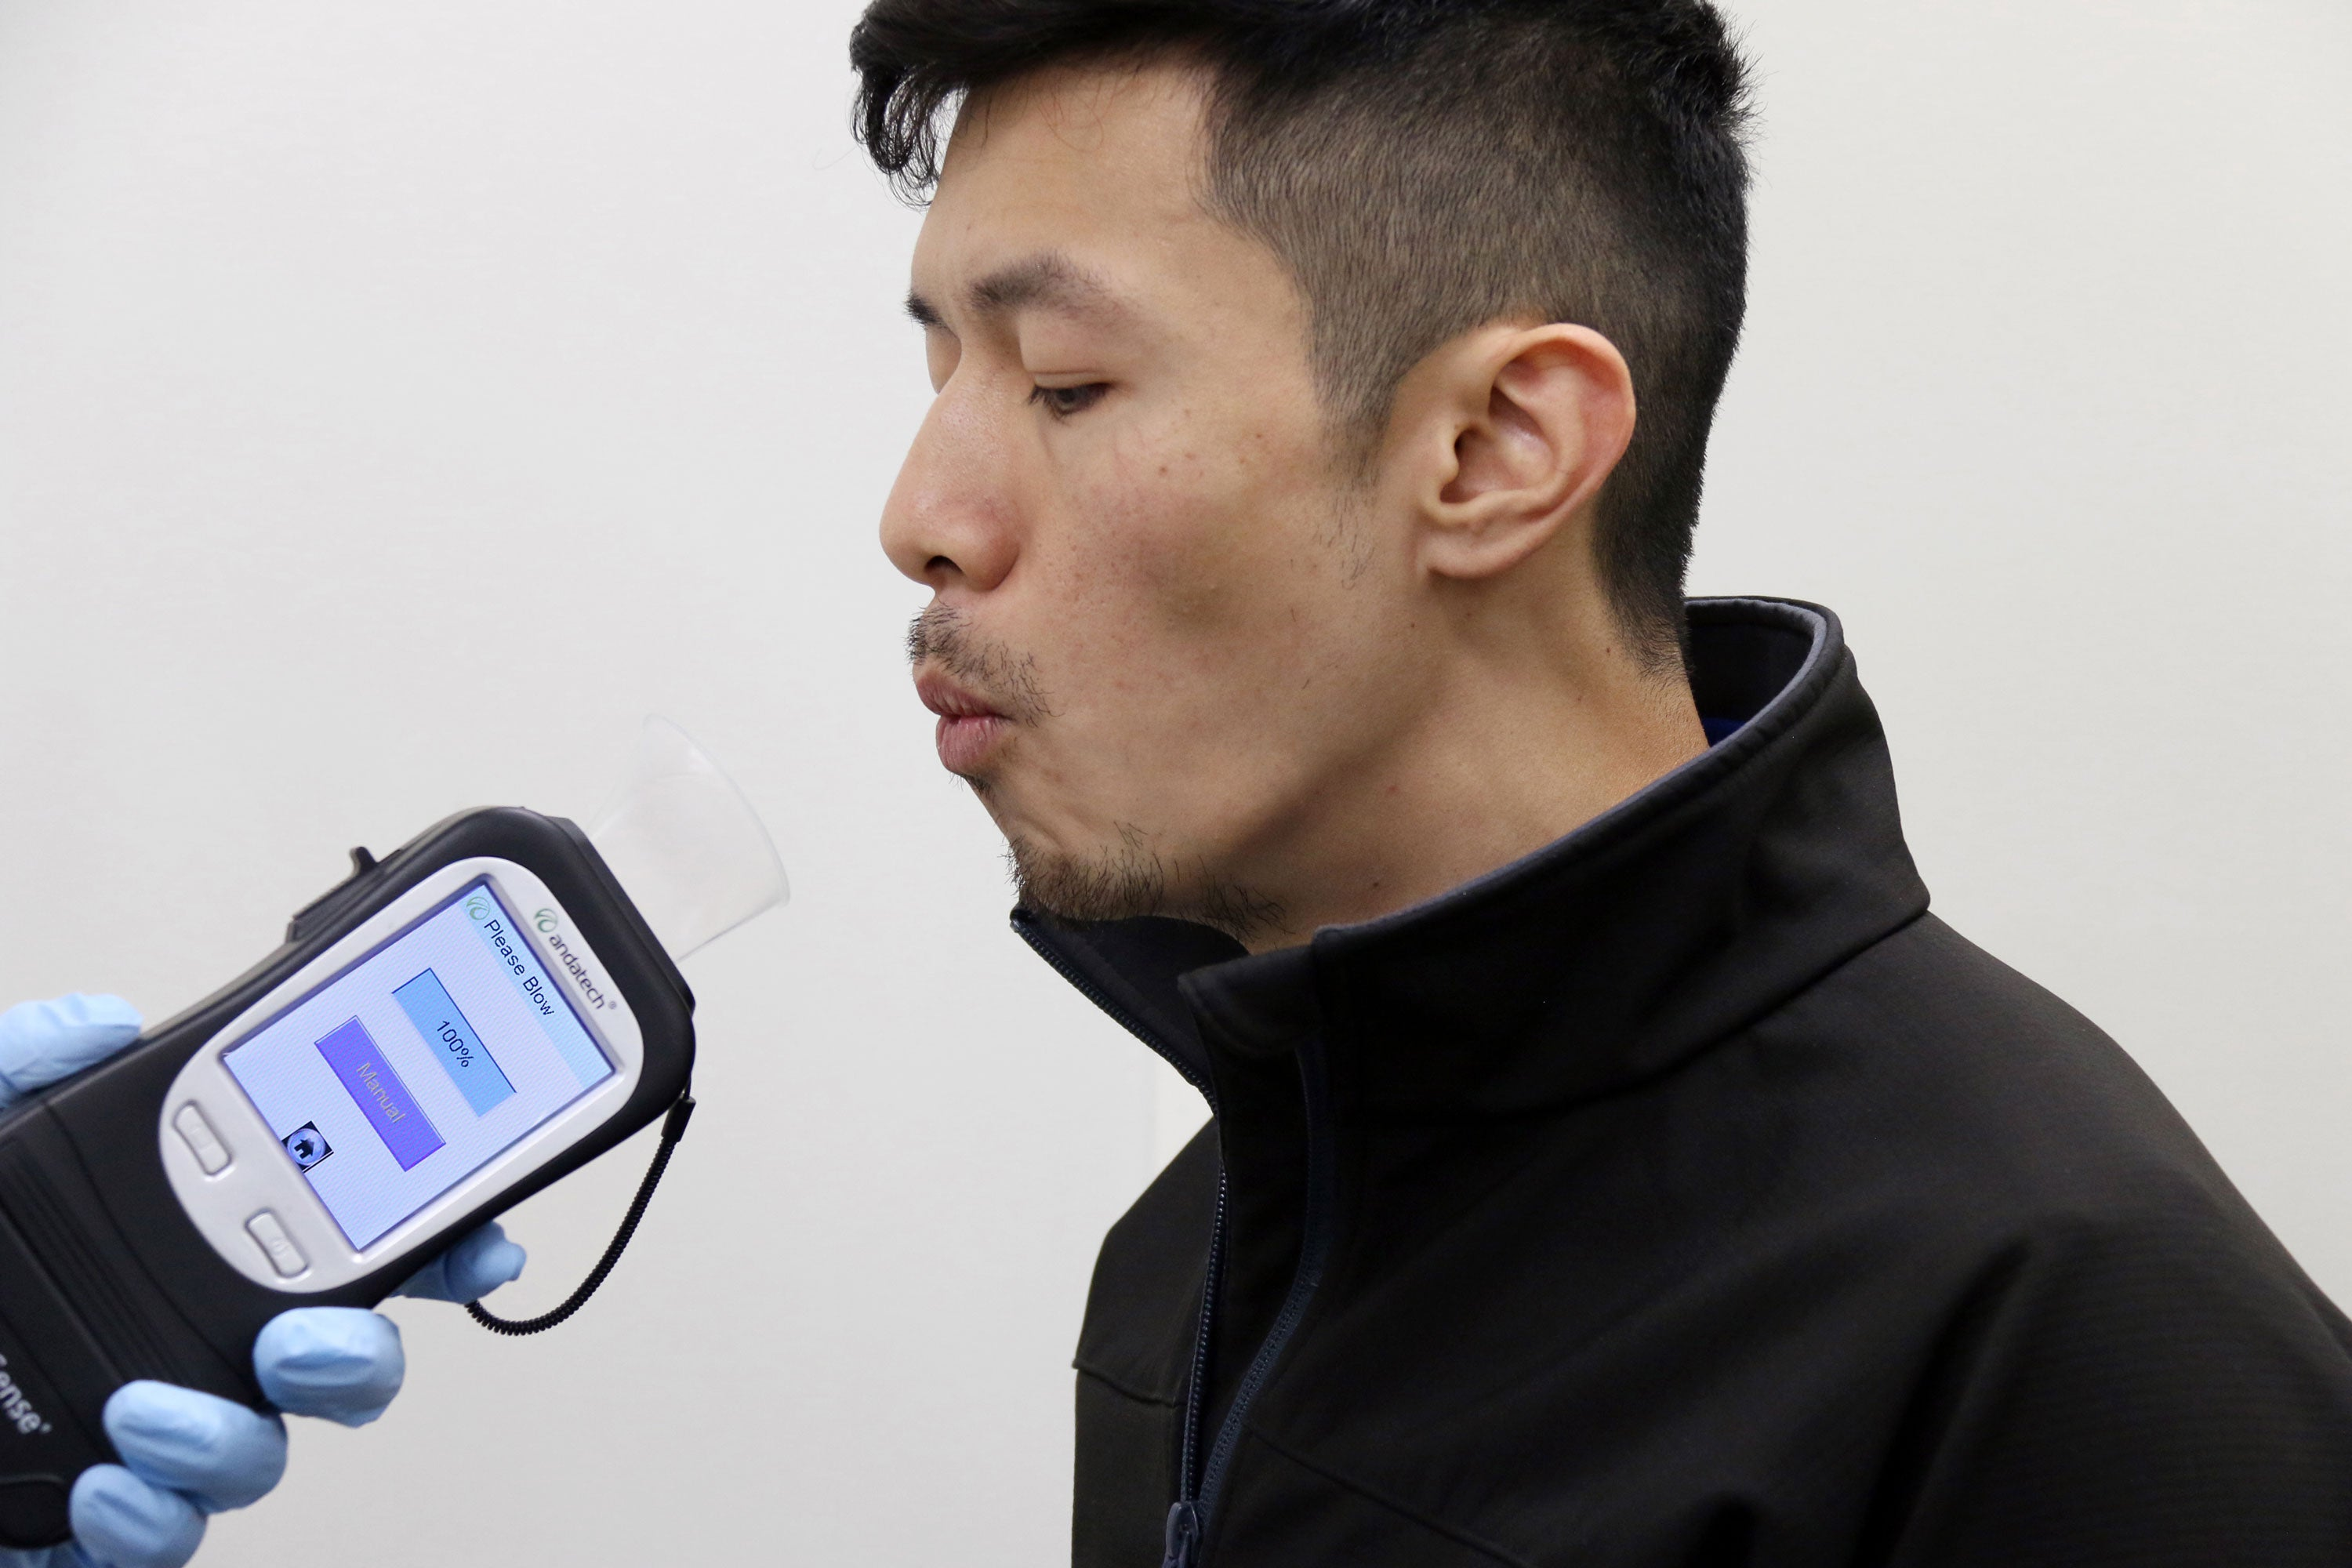 Man blowing into an Andatech Prodigy 2 Breathalyzer